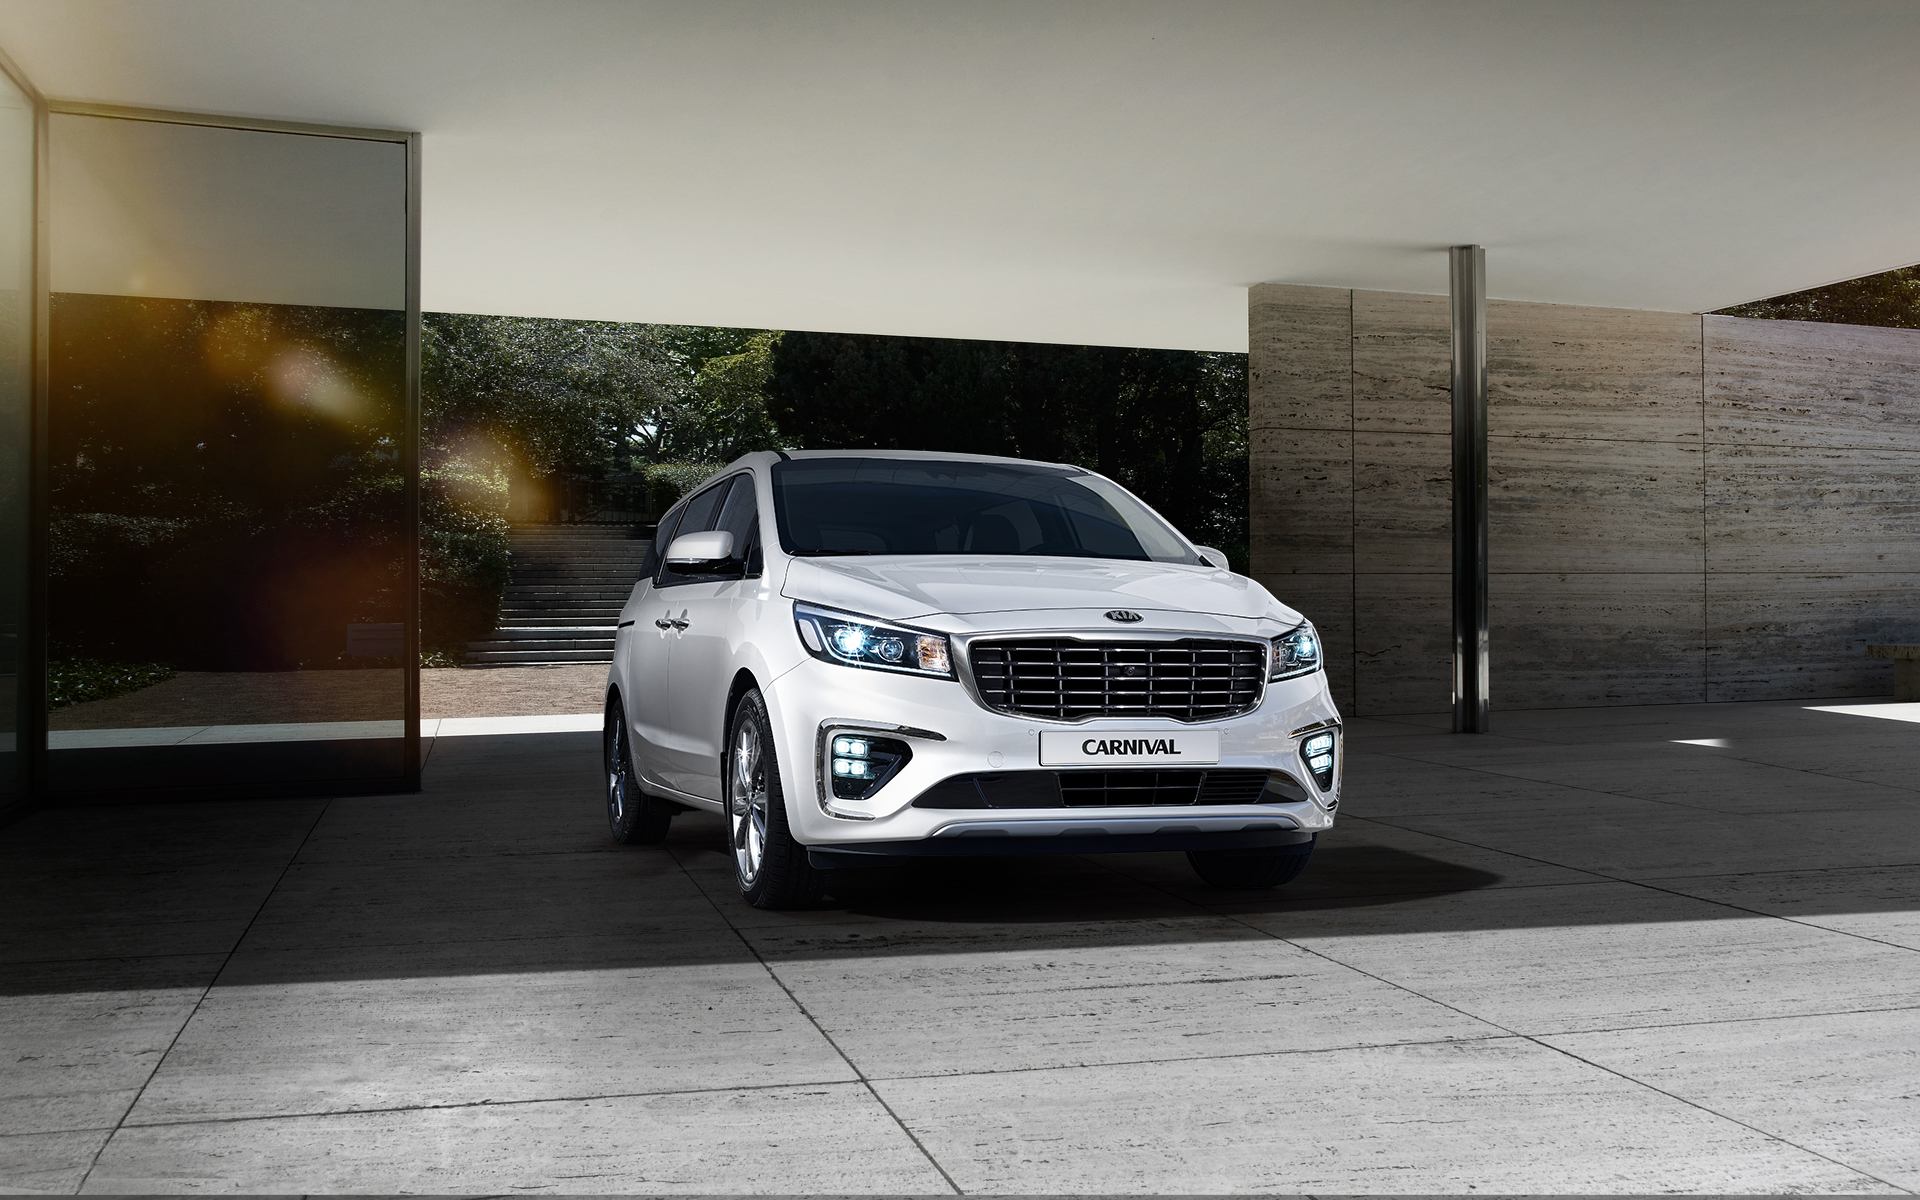 Facelifted Kia Sedona Revealed in South Korea